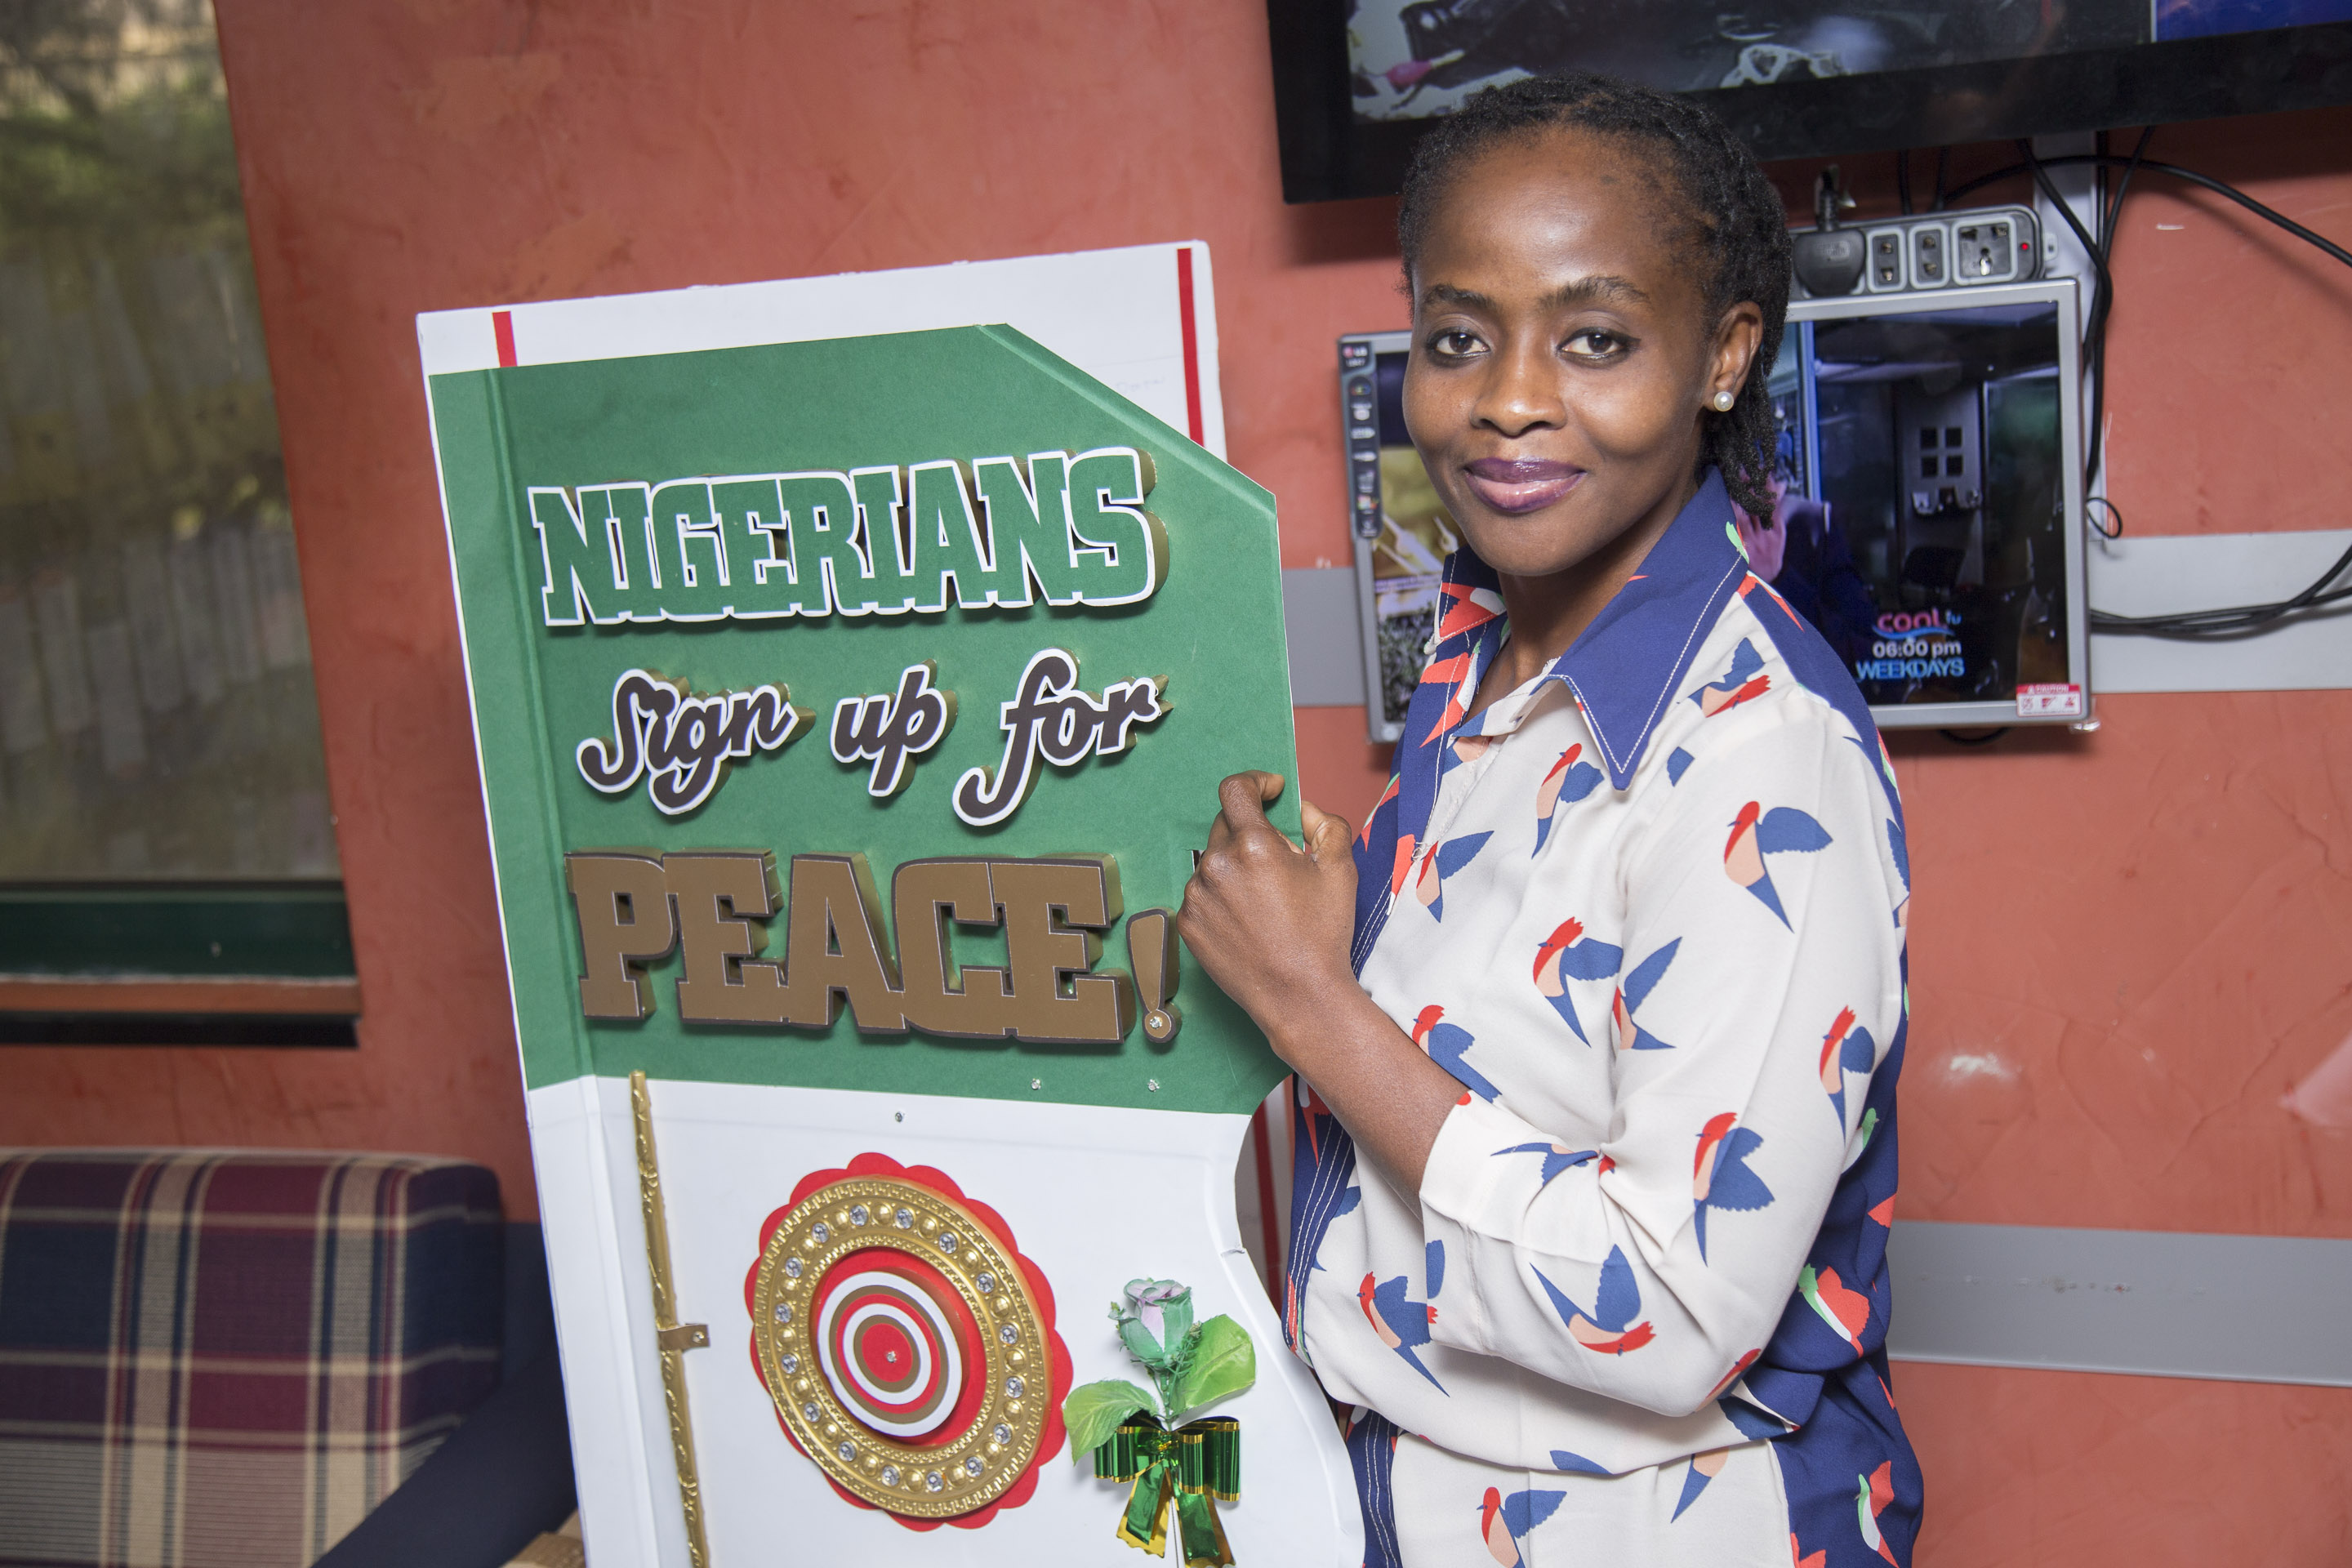 inya signs for peace